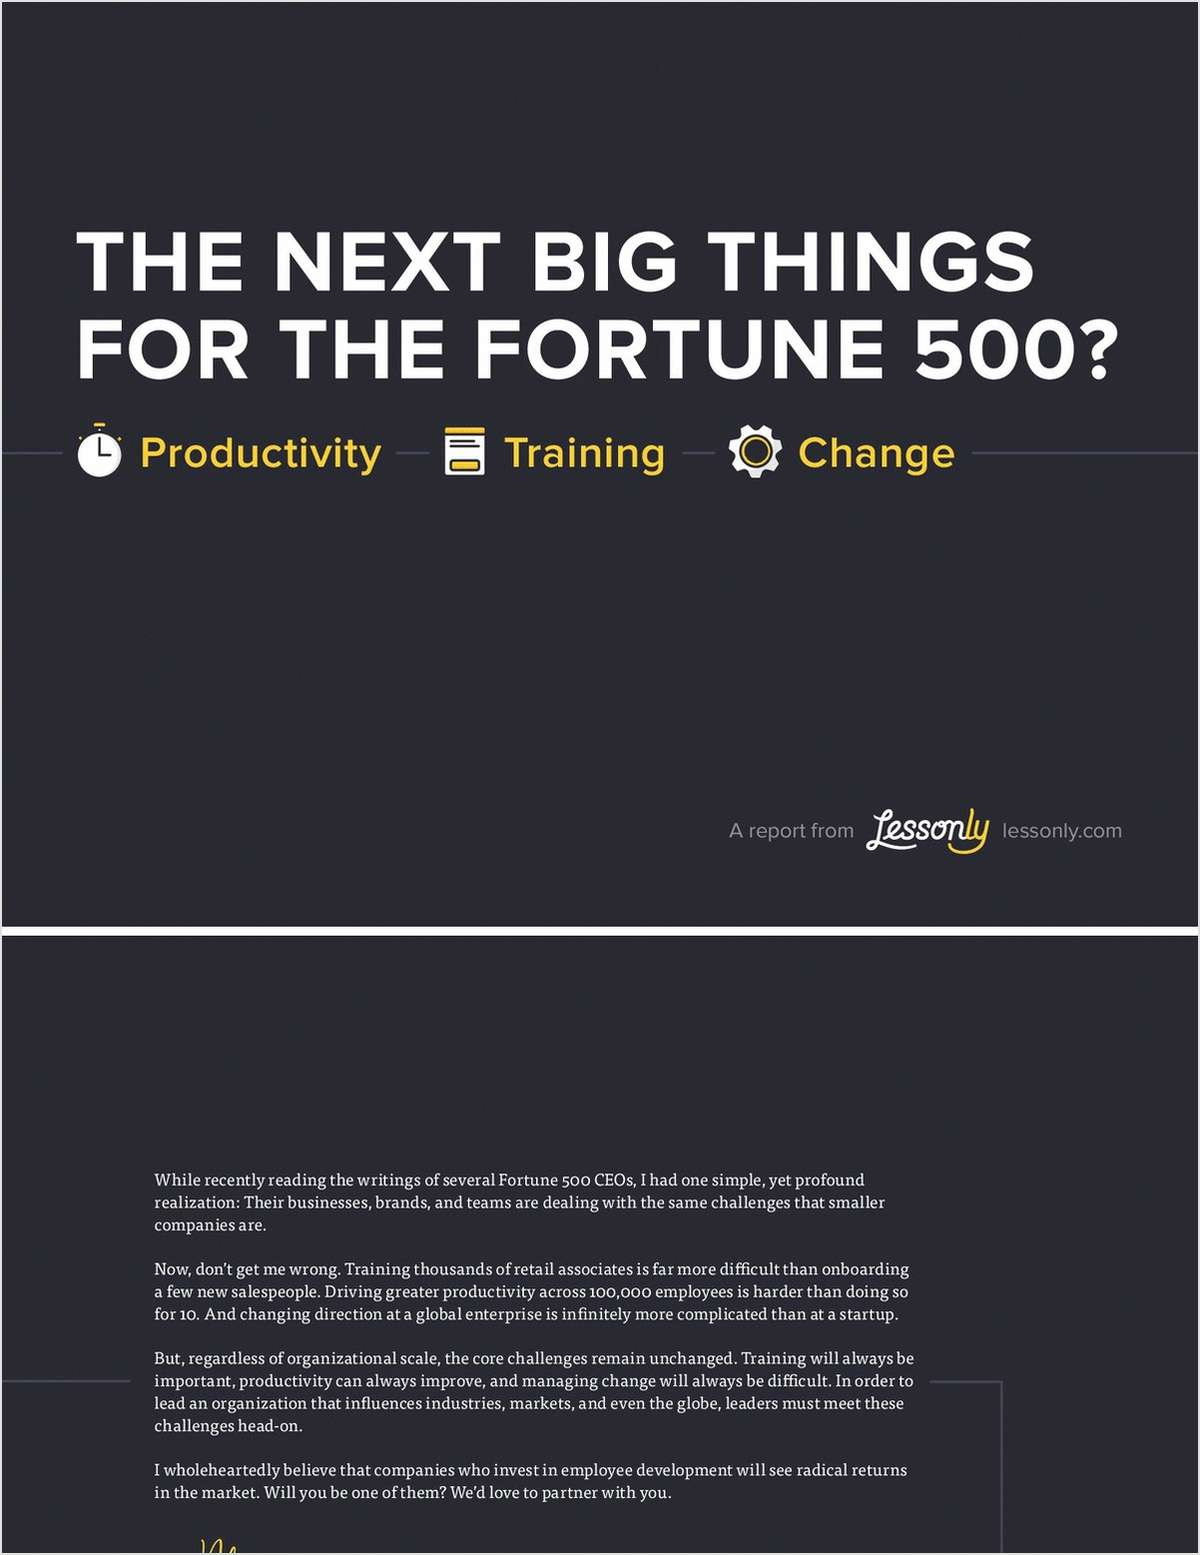 The Next Big Things for the Fortune 500?